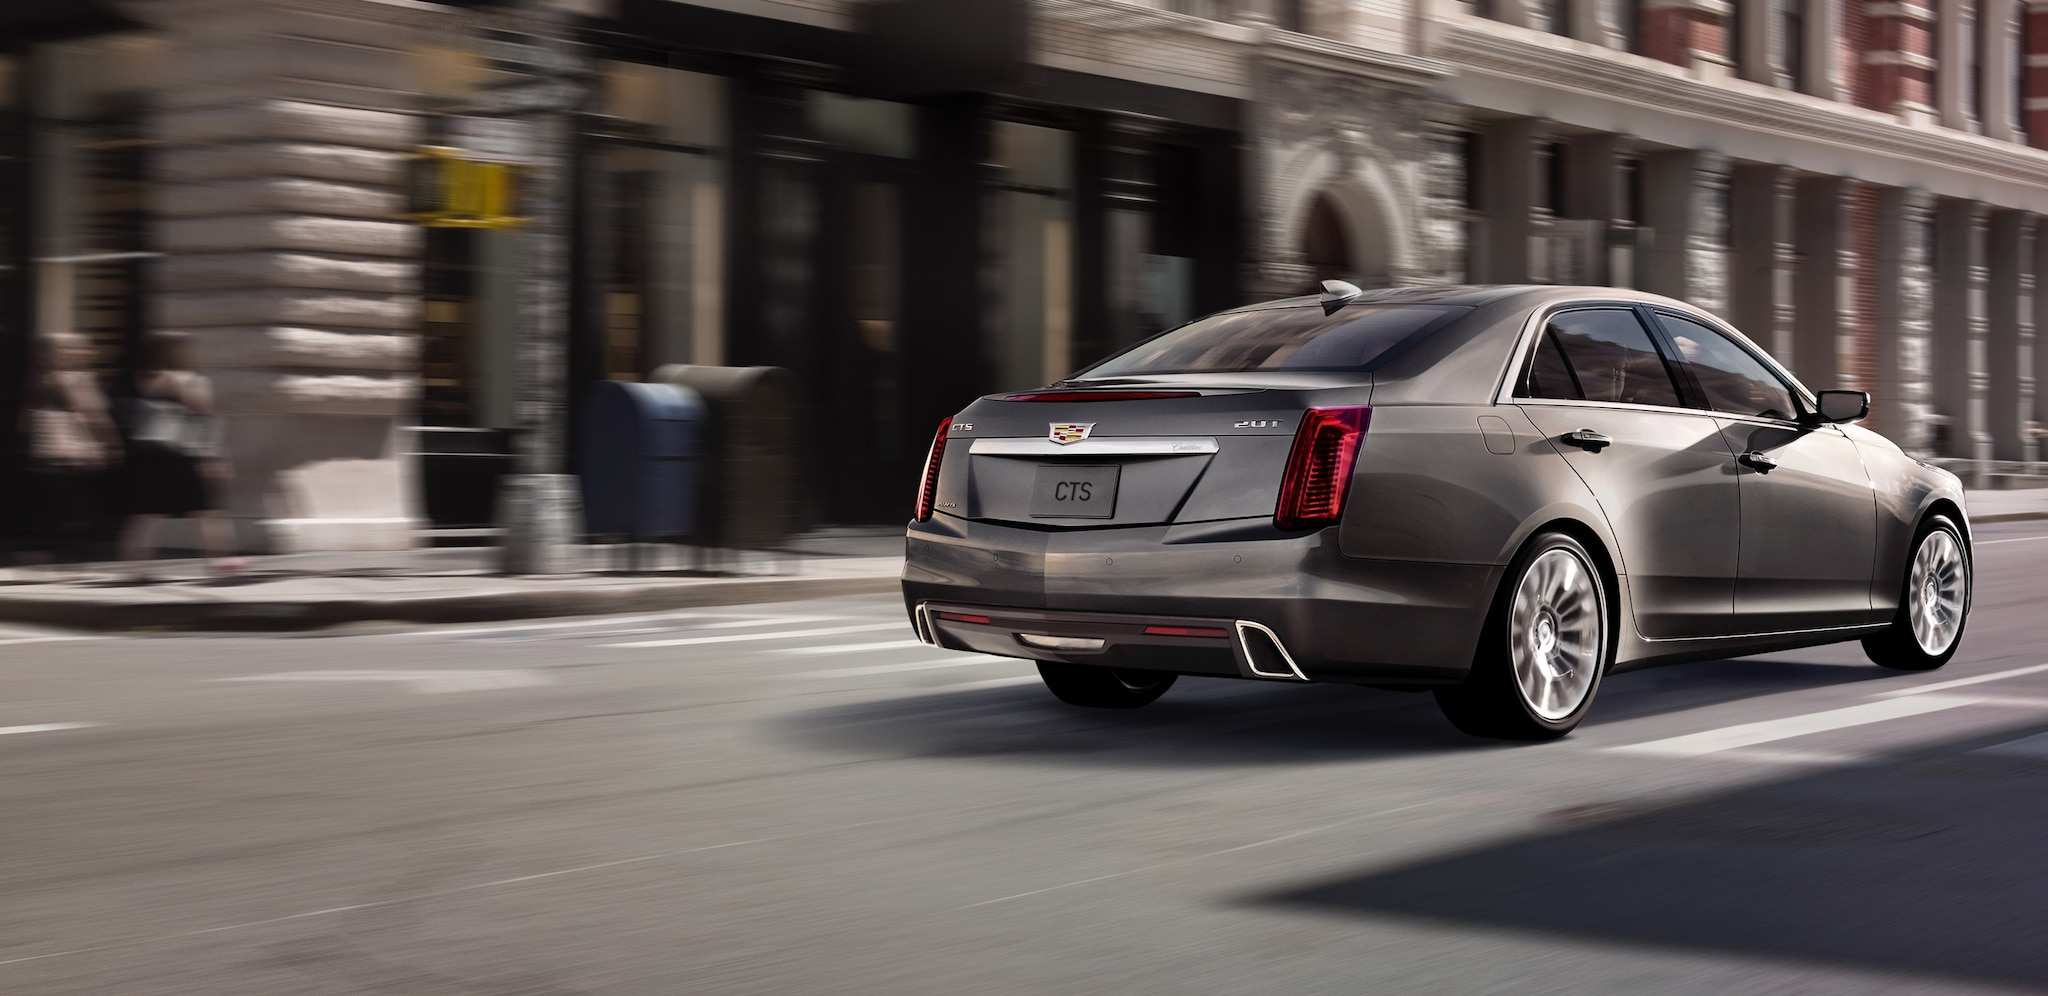 74 New 2019 Cadillac Dts Rumors by 2019 Cadillac Dts